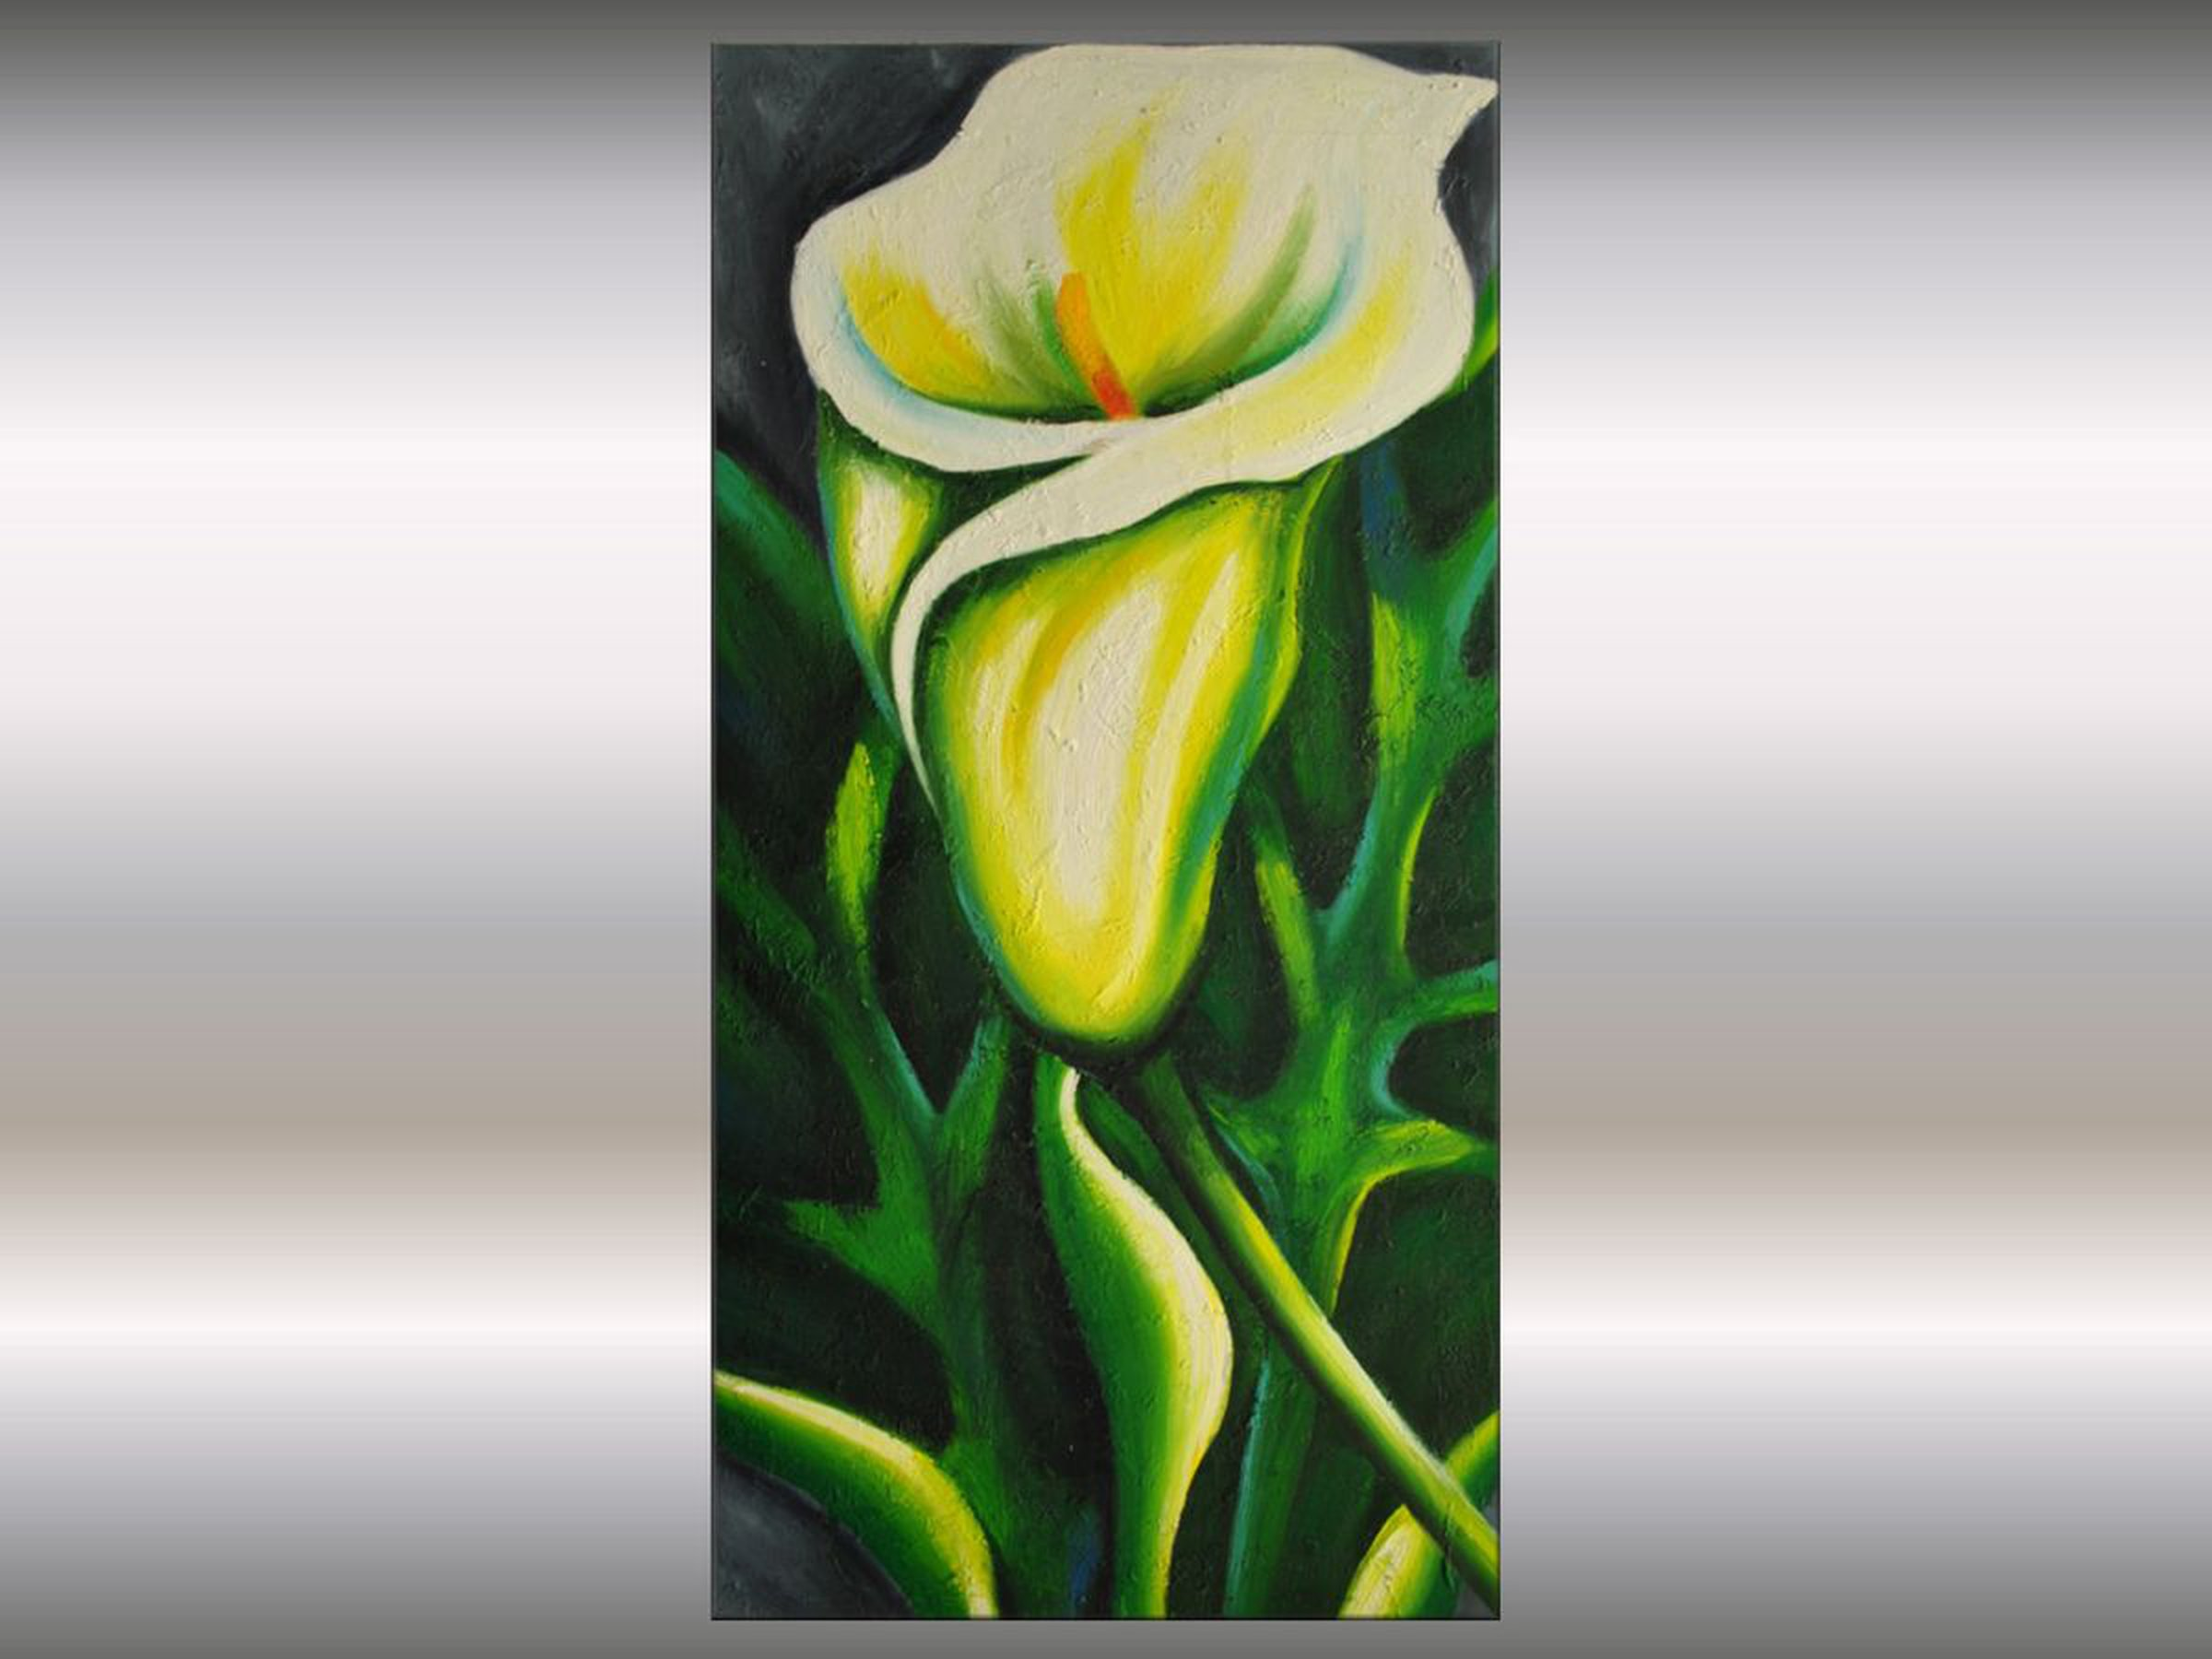 White Calla Acrylic Abstract Painting Flowers Blossoms Nature Painting Canvas Wall Art